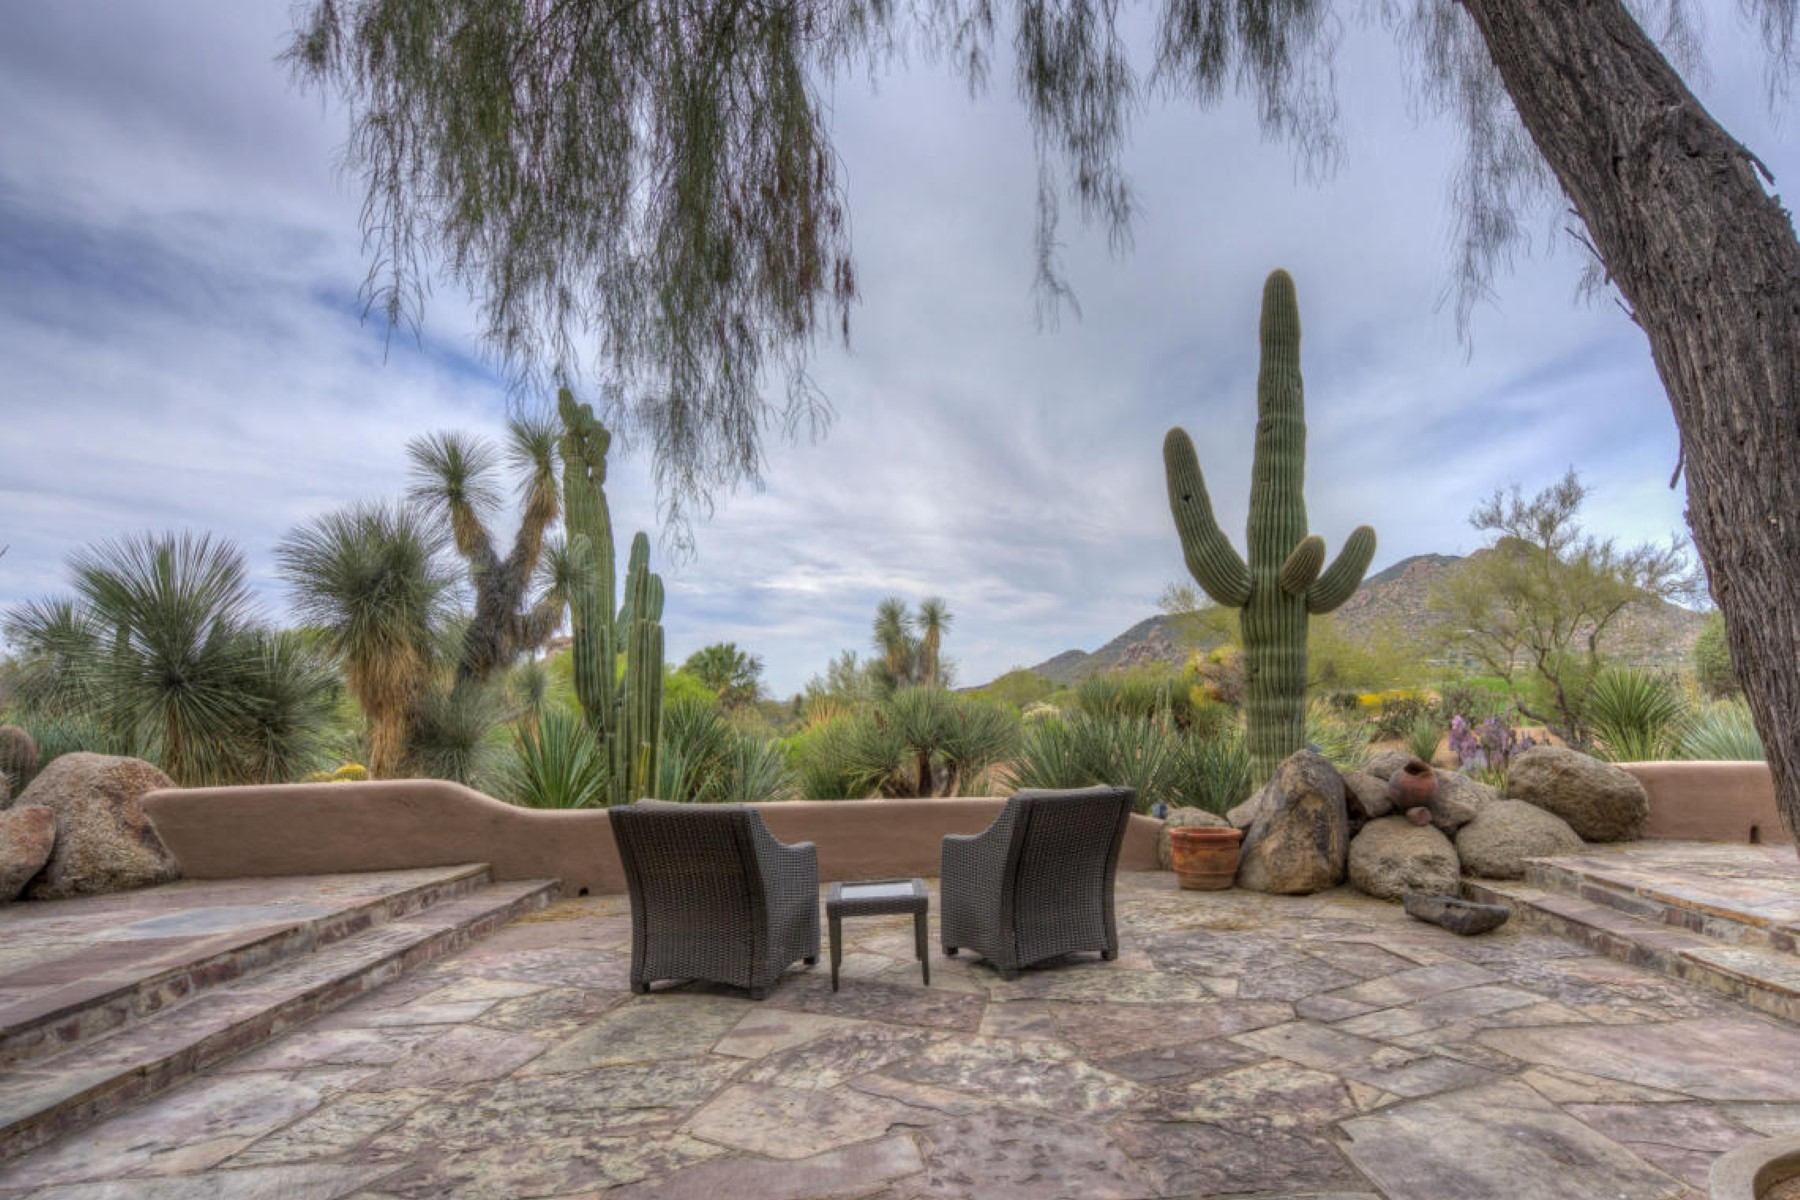 Additional photo for property listing at Southwest inspired Boulders home 1607 N Quartz Valley Dr Scottsdale, Arizona 85266 United States